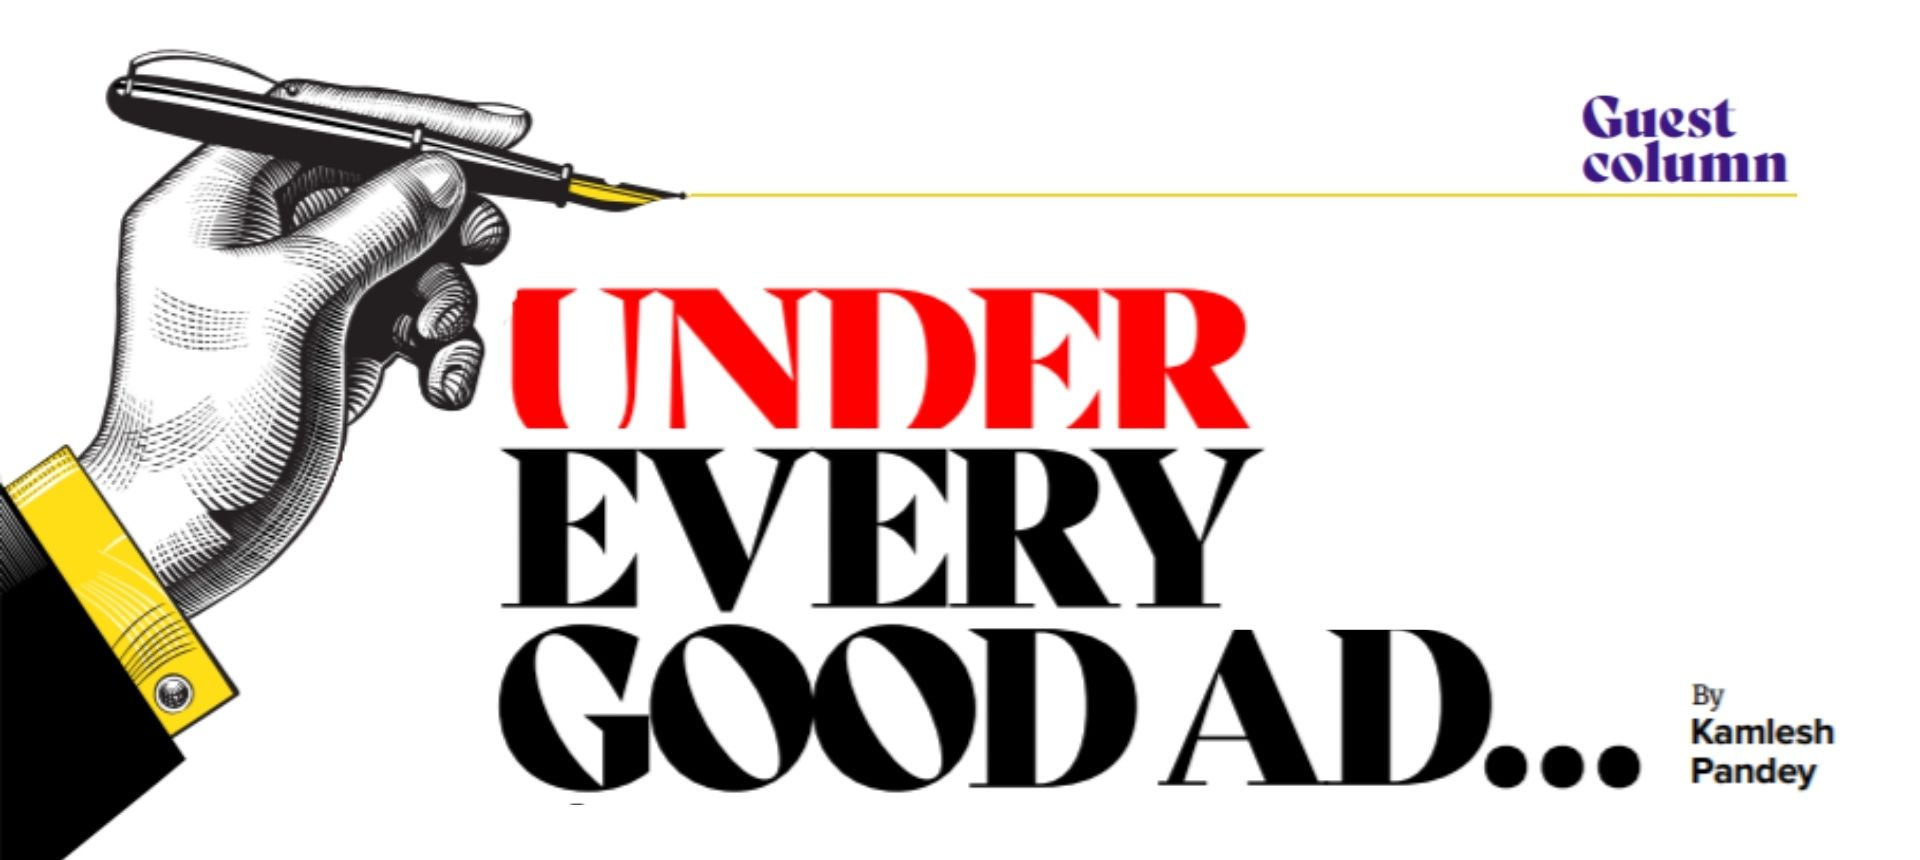 Under every good ad…